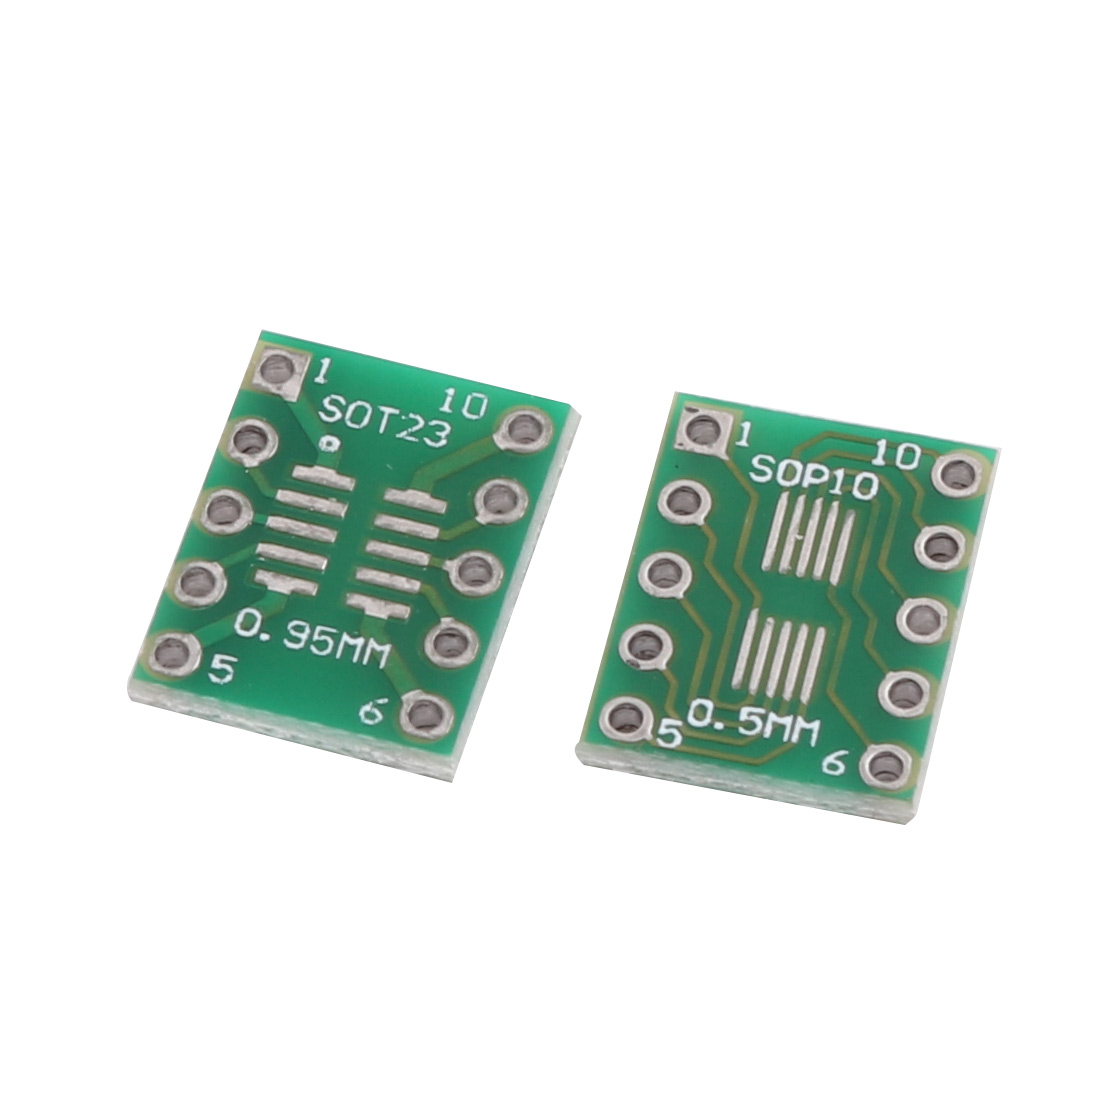 4Pcs Prototyping Double Side PCB Board Stripboard Green 8x12mm SOT223